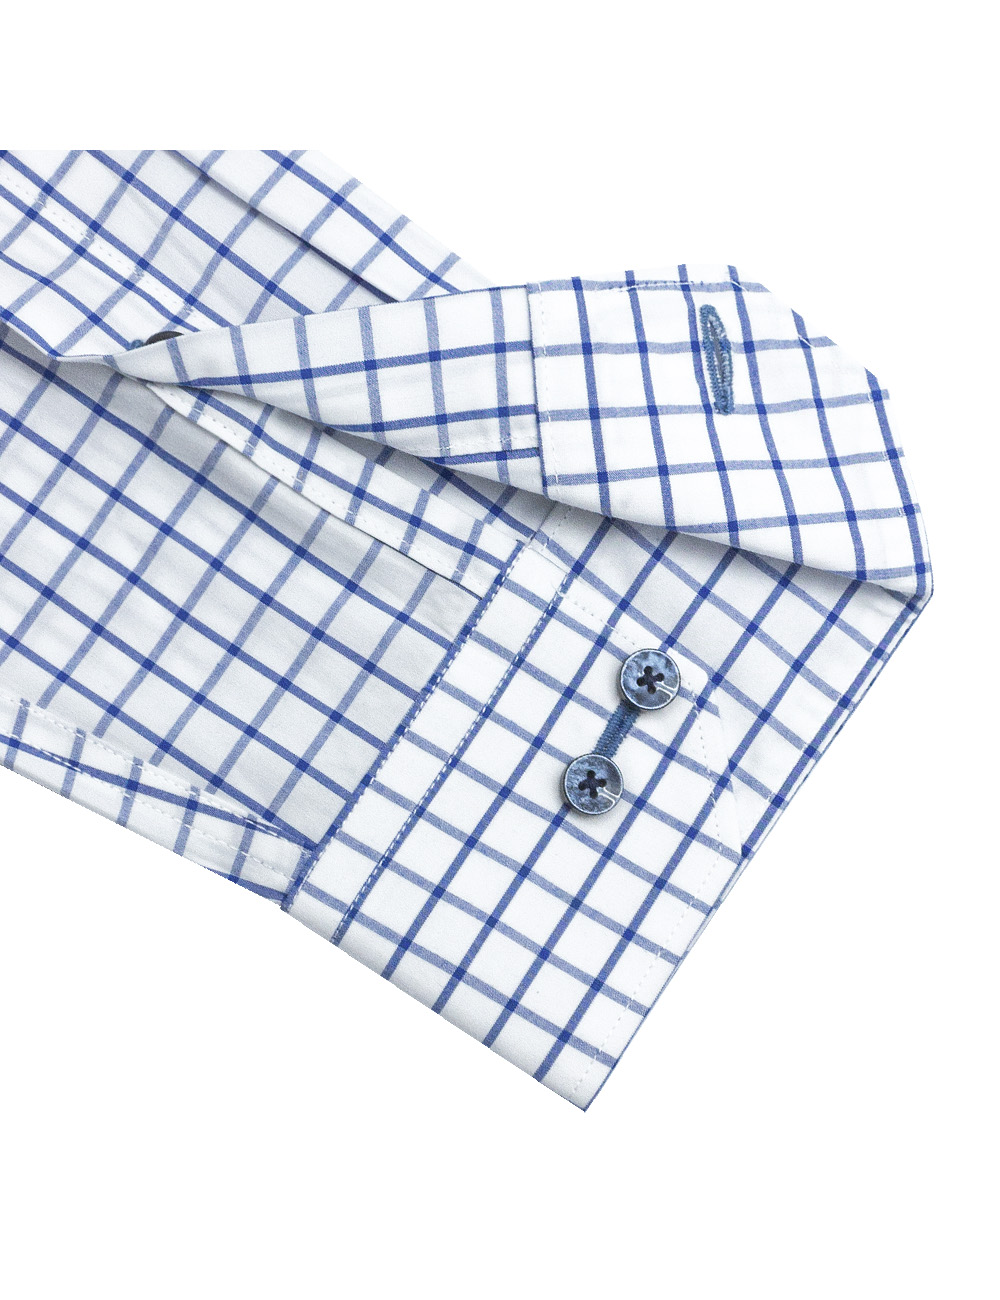 White with Blue Checks Slim / Tailored Fit Long Sleeve Shirt - TF2A17.20